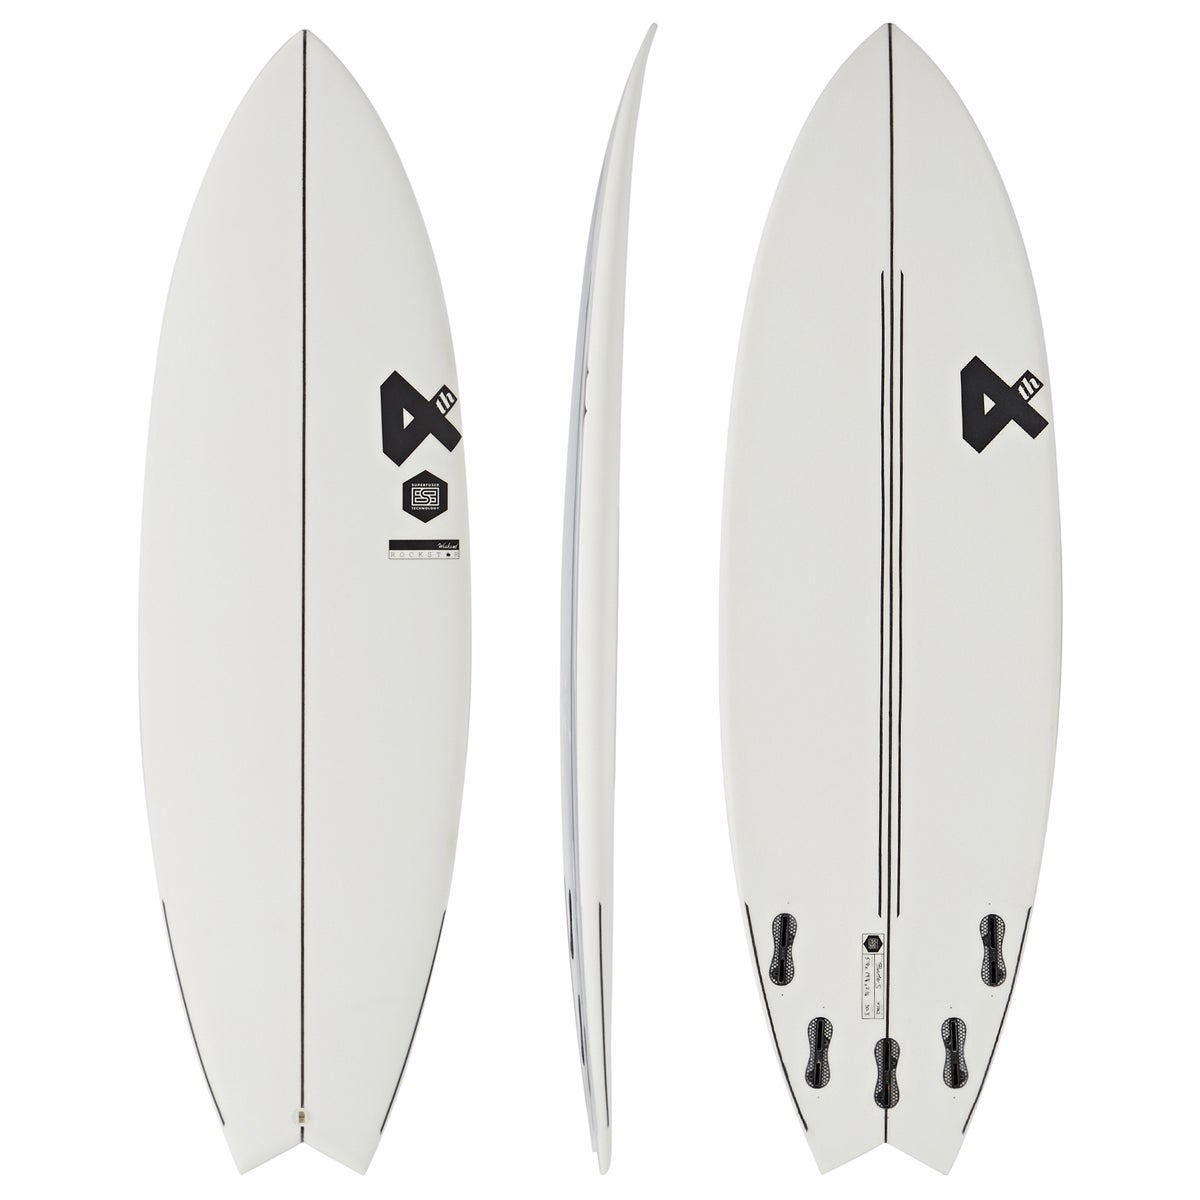 Fourth Surfboards Weekend Rockstar Ese Construction FCS II 5 Fin Surfboard